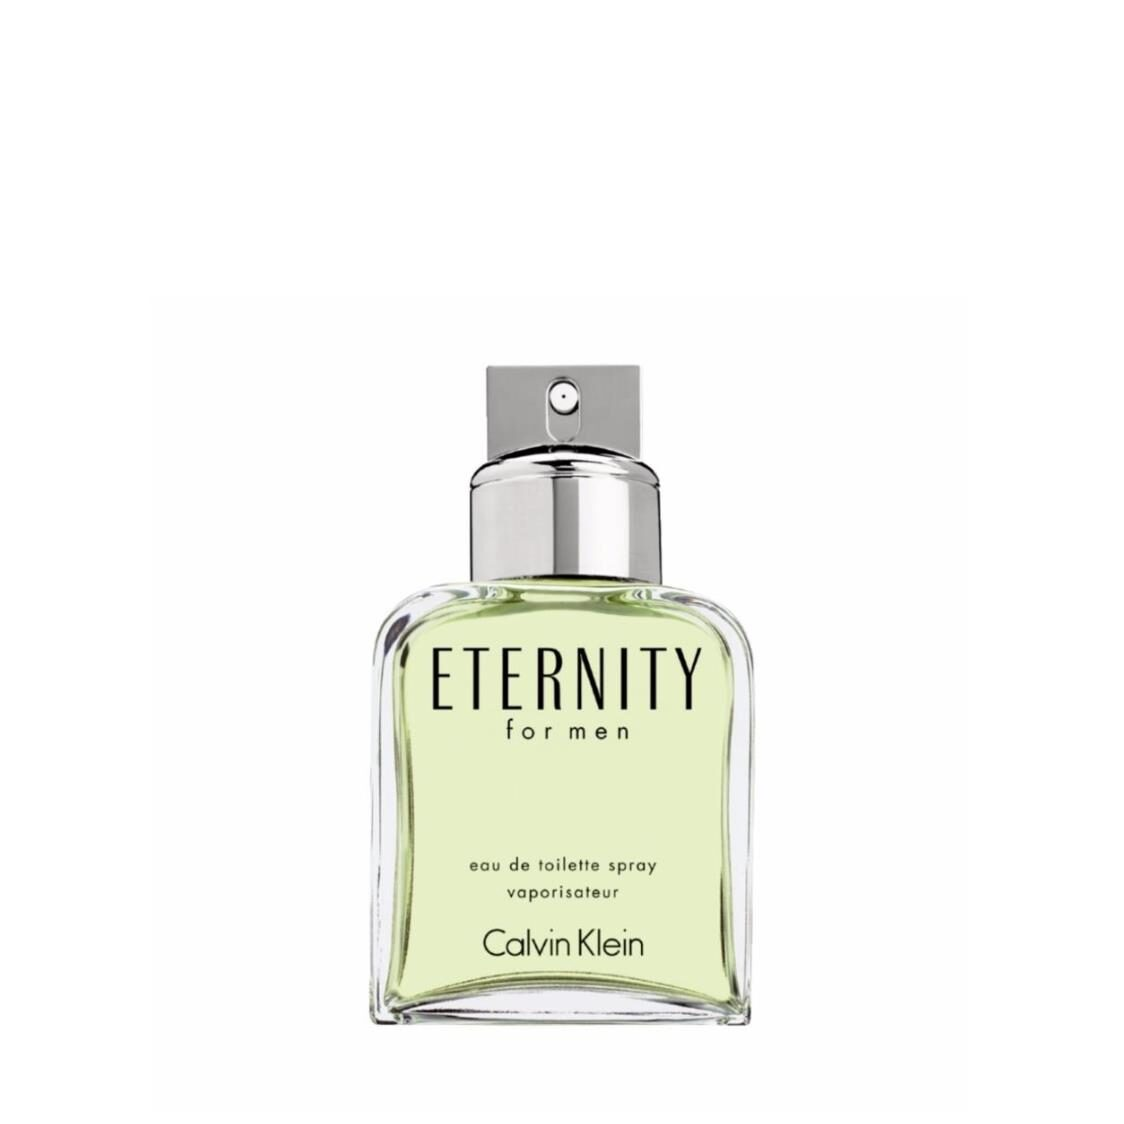 CK Eternity Men EDT